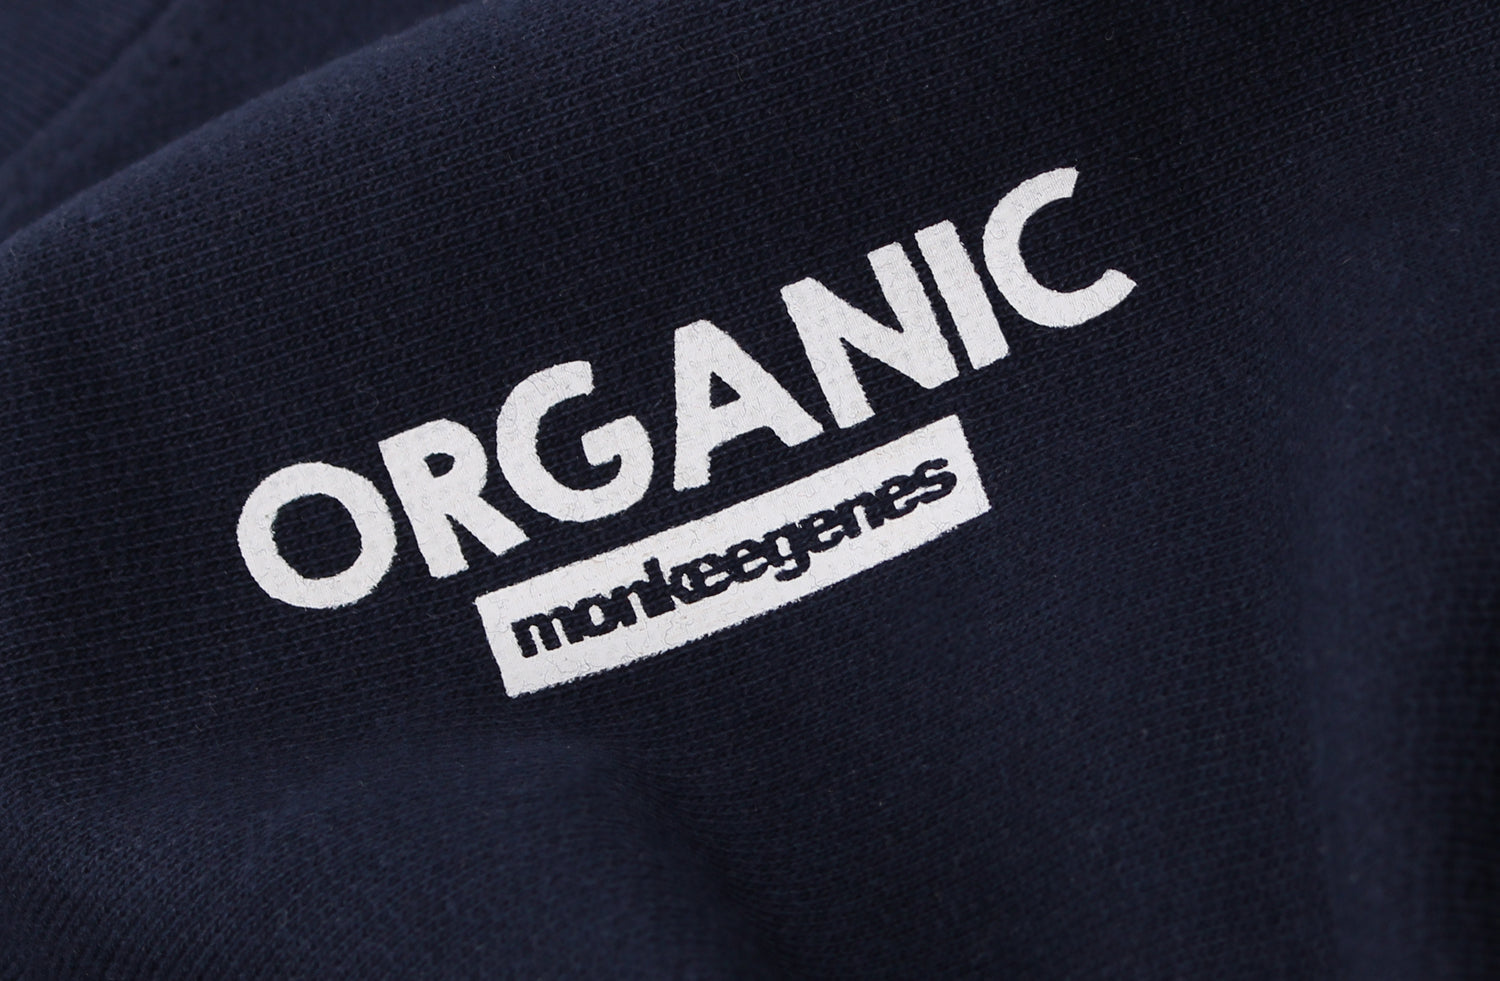 Men's Organic Cotton Oversized Sweat in Navy - Monkee Genes Organic Jeans Denim - Men's Hoodies Monkee Genes Official  Monkee Genes Official